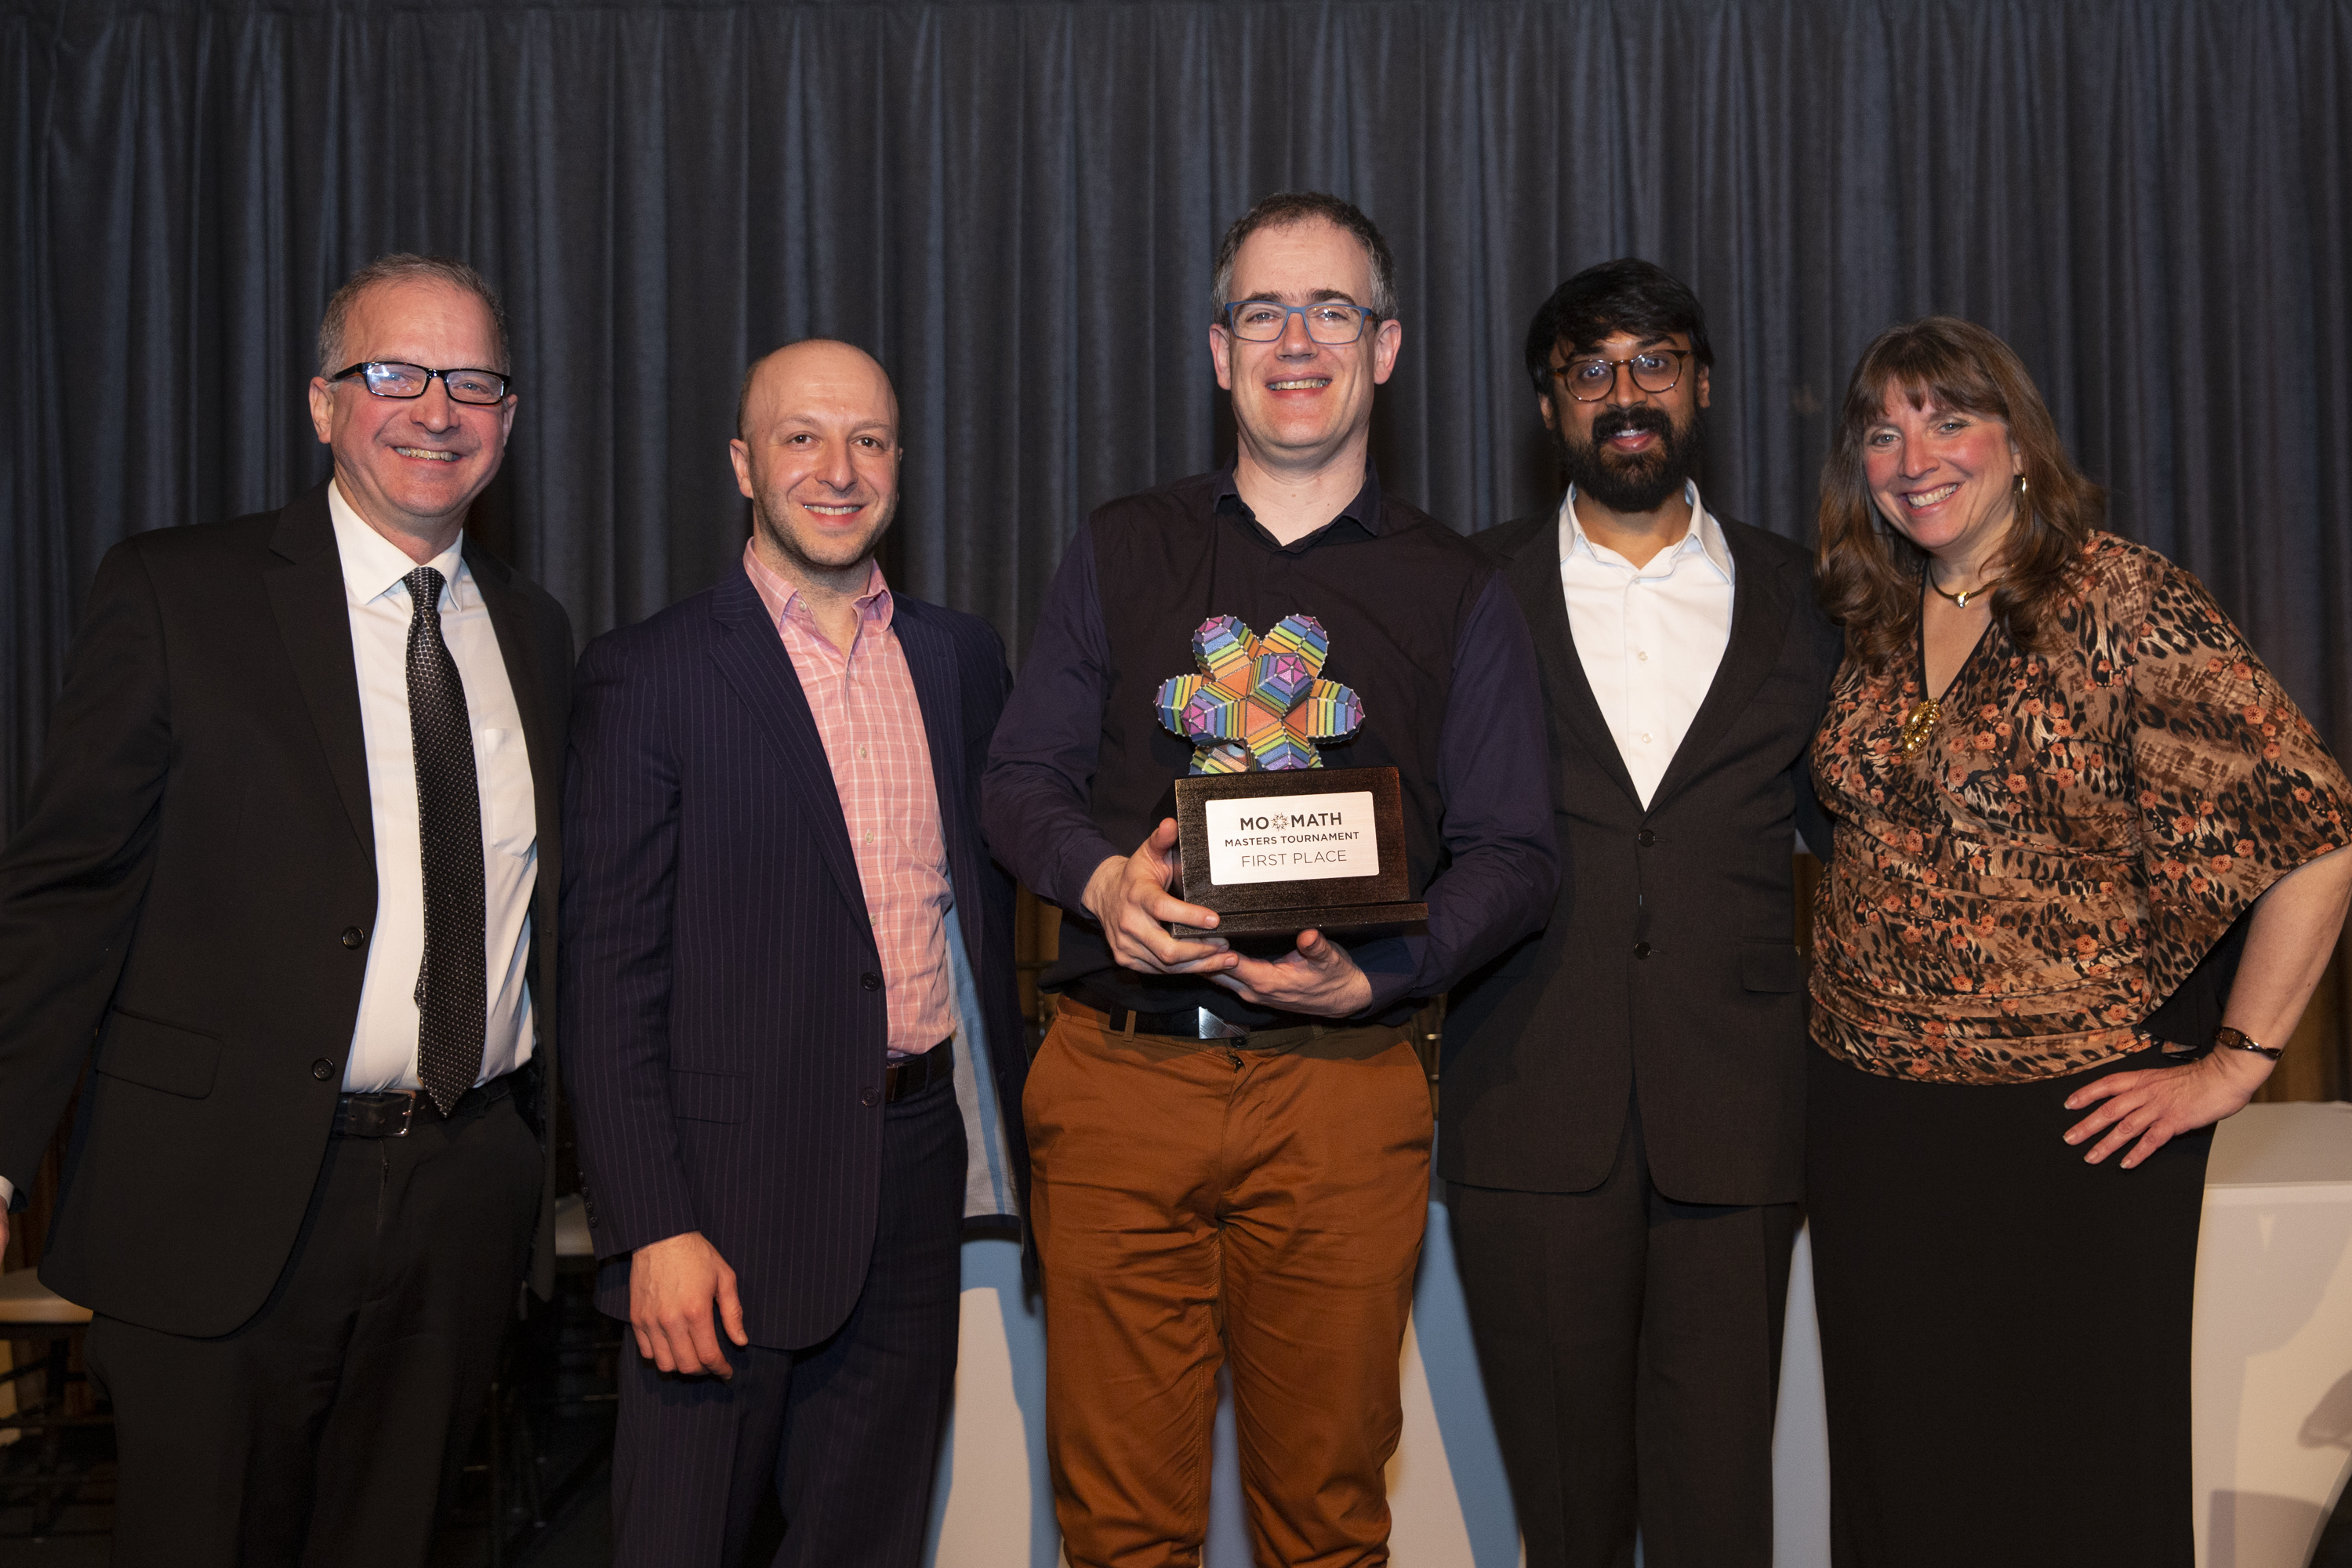 Associate Director Tim Nissen, Dean of Academic Content Alex Kontorovich, Fields Medalist and Distinguished Visiting Professor Manjul Bhargava, and Executive Director Cindy Lawrence with 2019 MoMath Masters tournament Champion Geva Patz